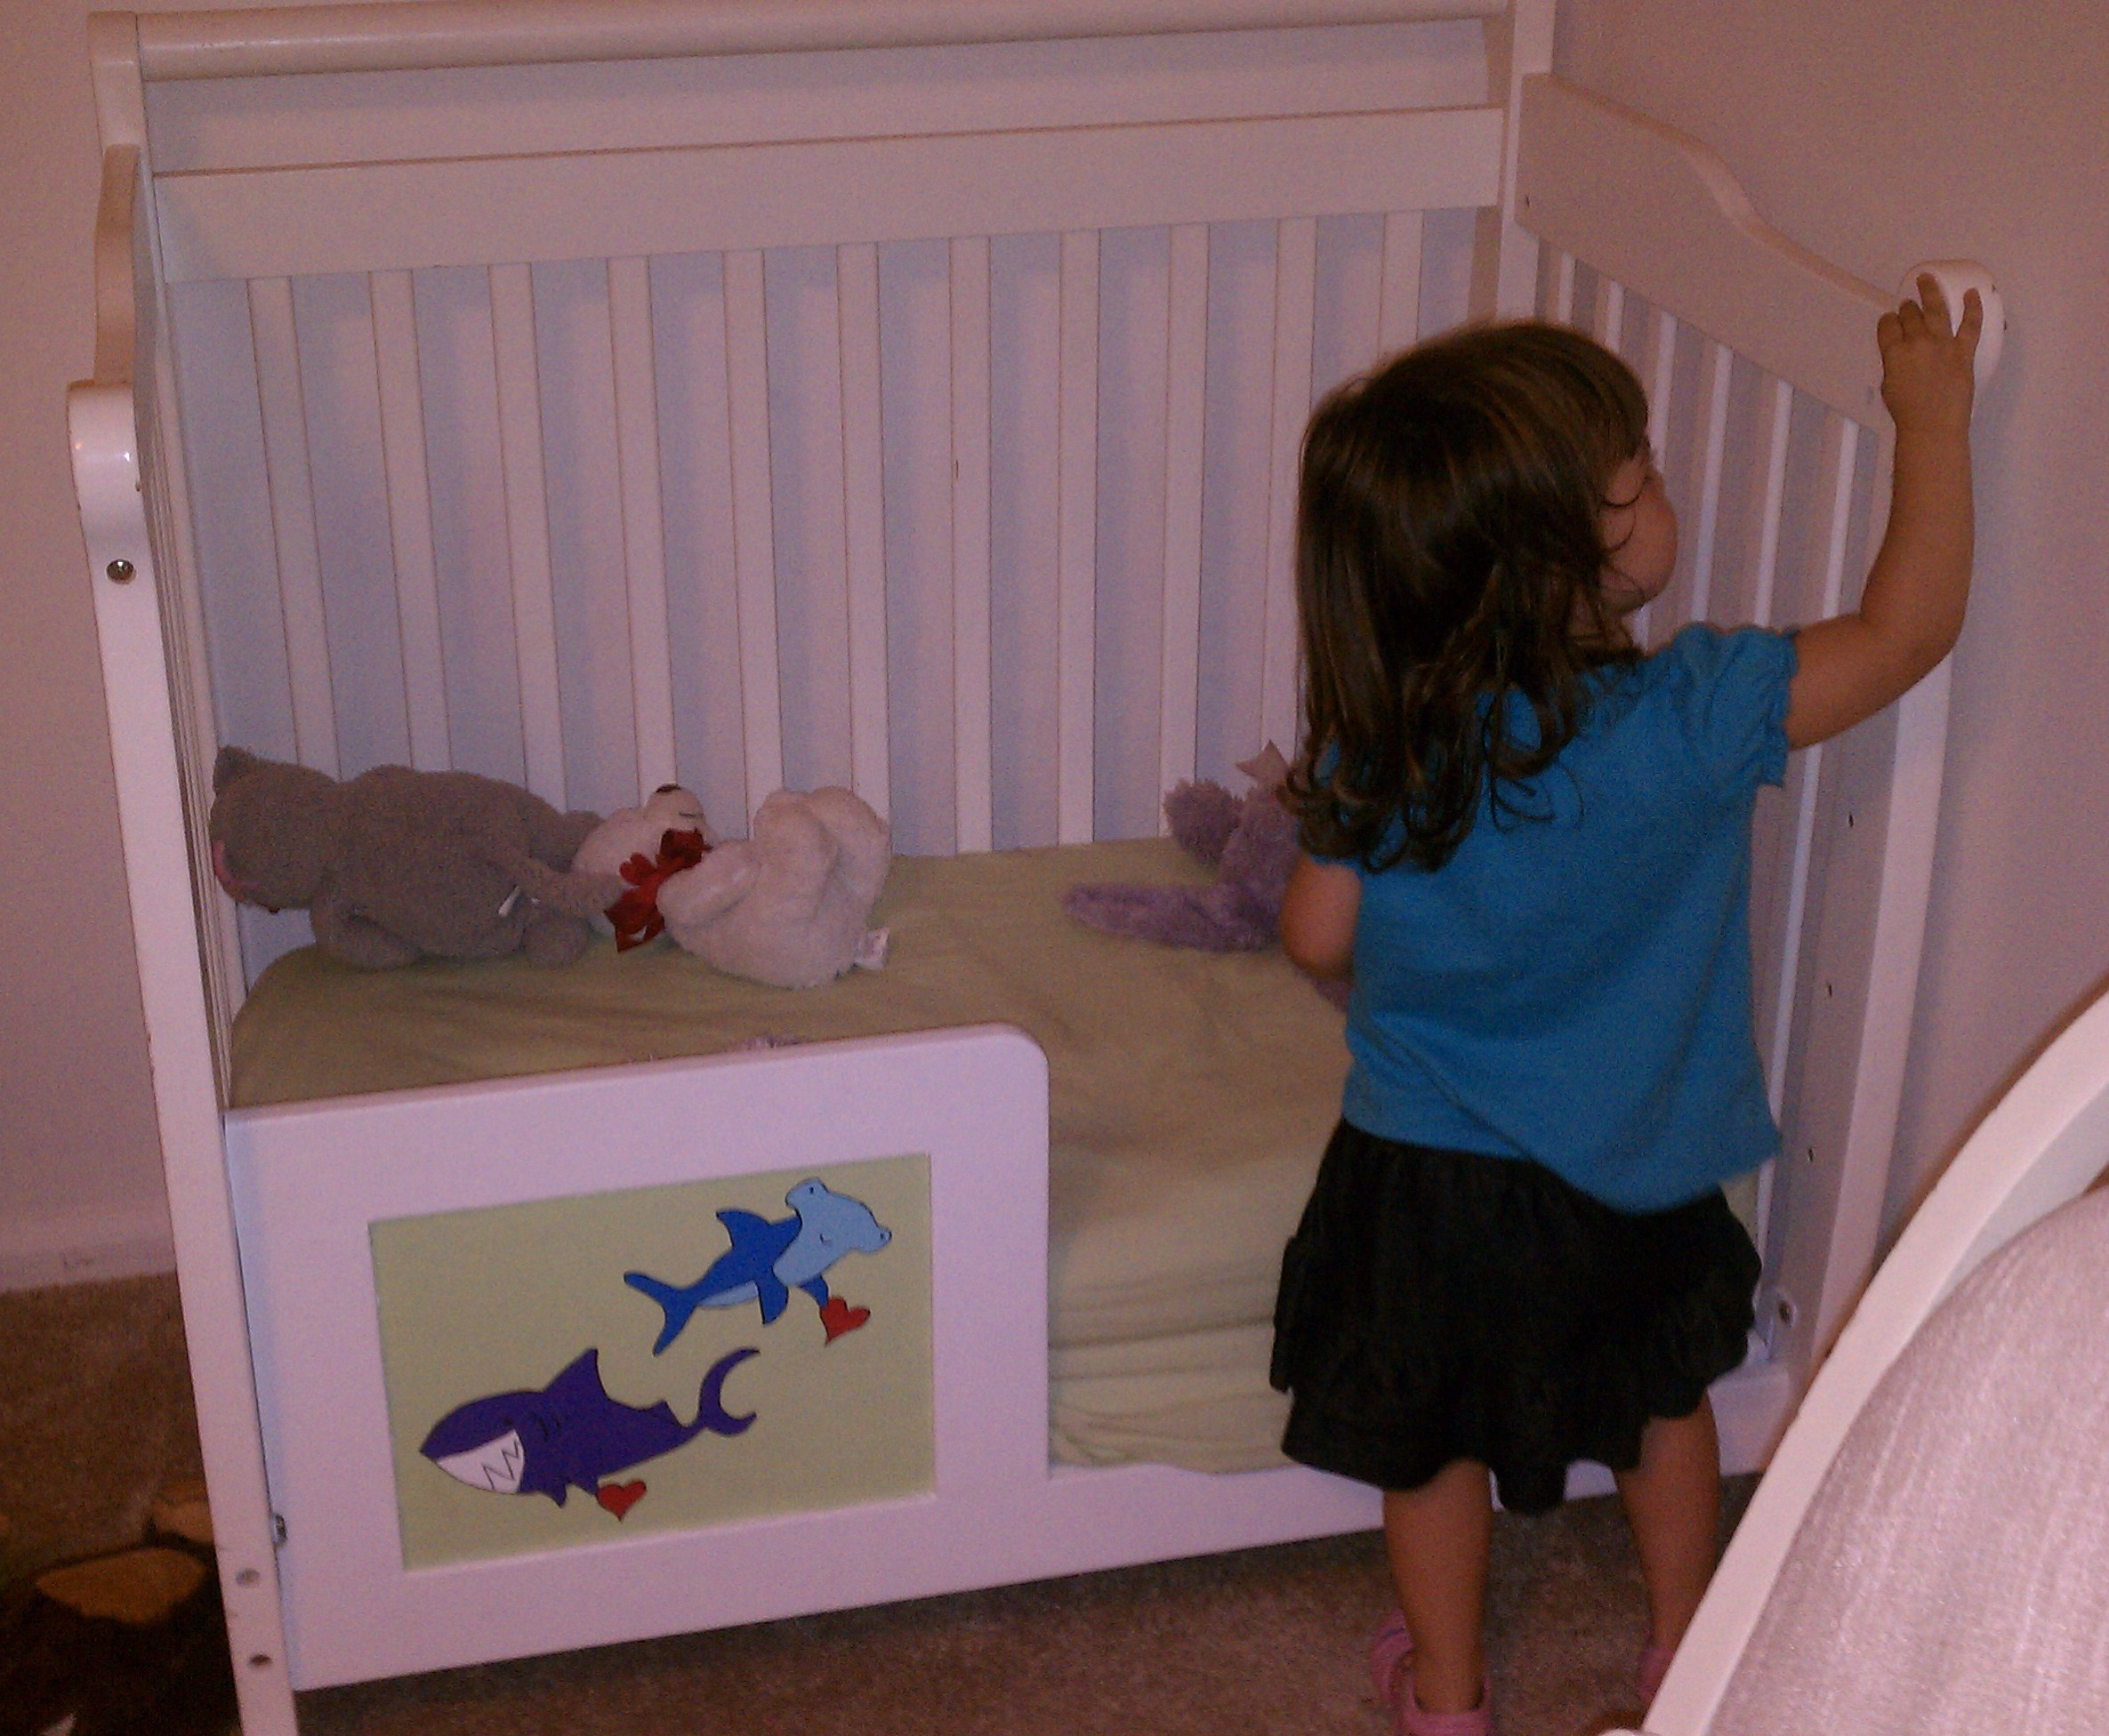 Mini Toddler Bed Ocean Nursery Update 2 Turning The Mini Crib Into A